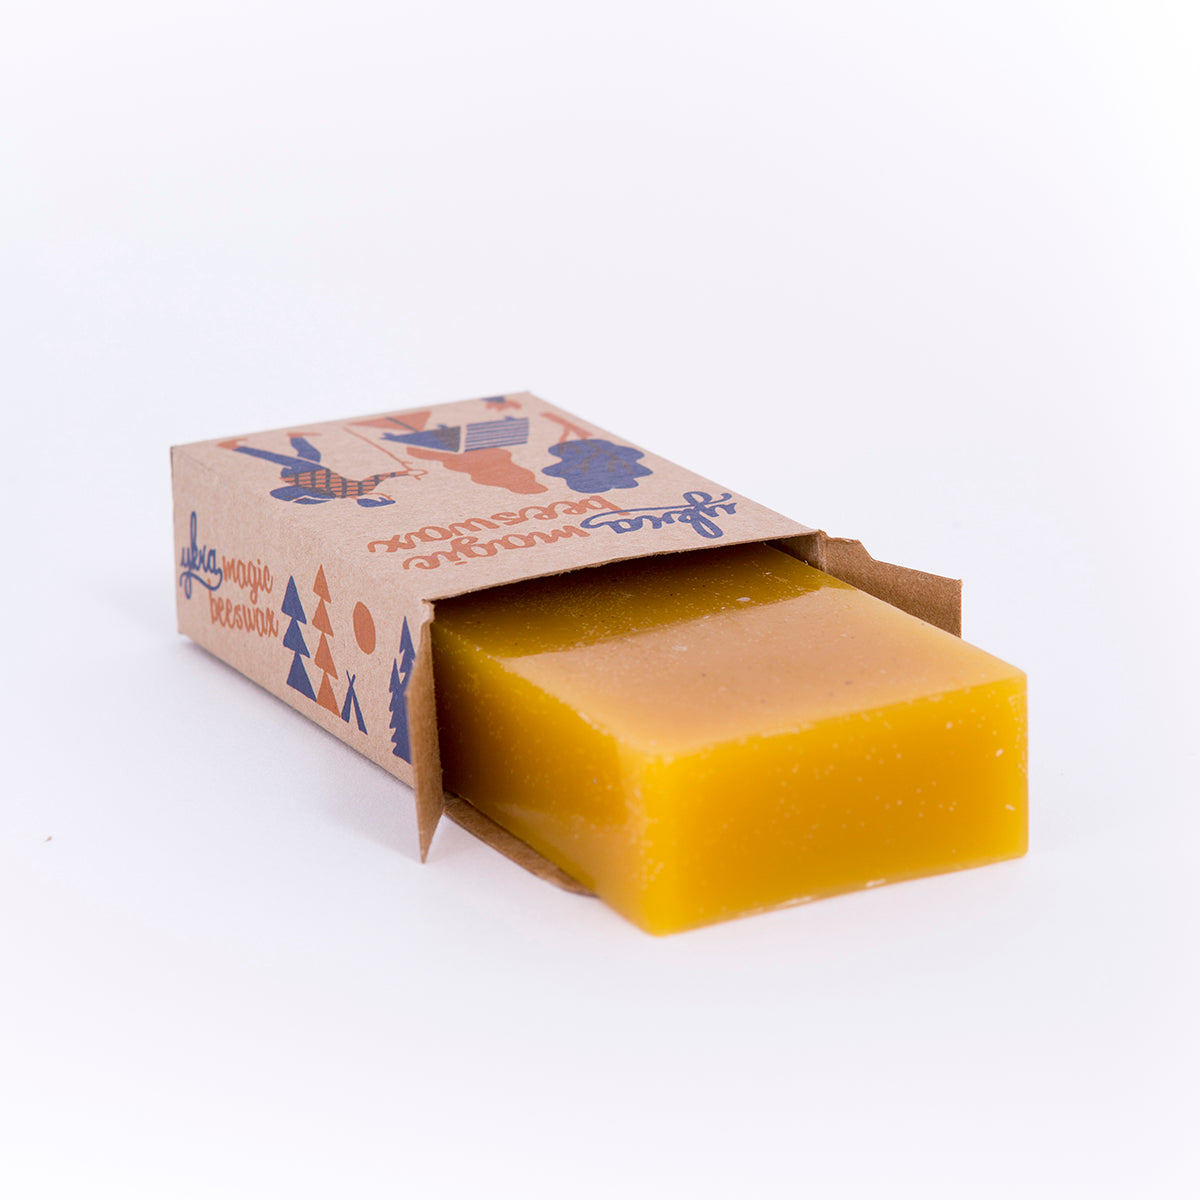 YKRA Impregnating wax beeswax ykra magic beeswax box